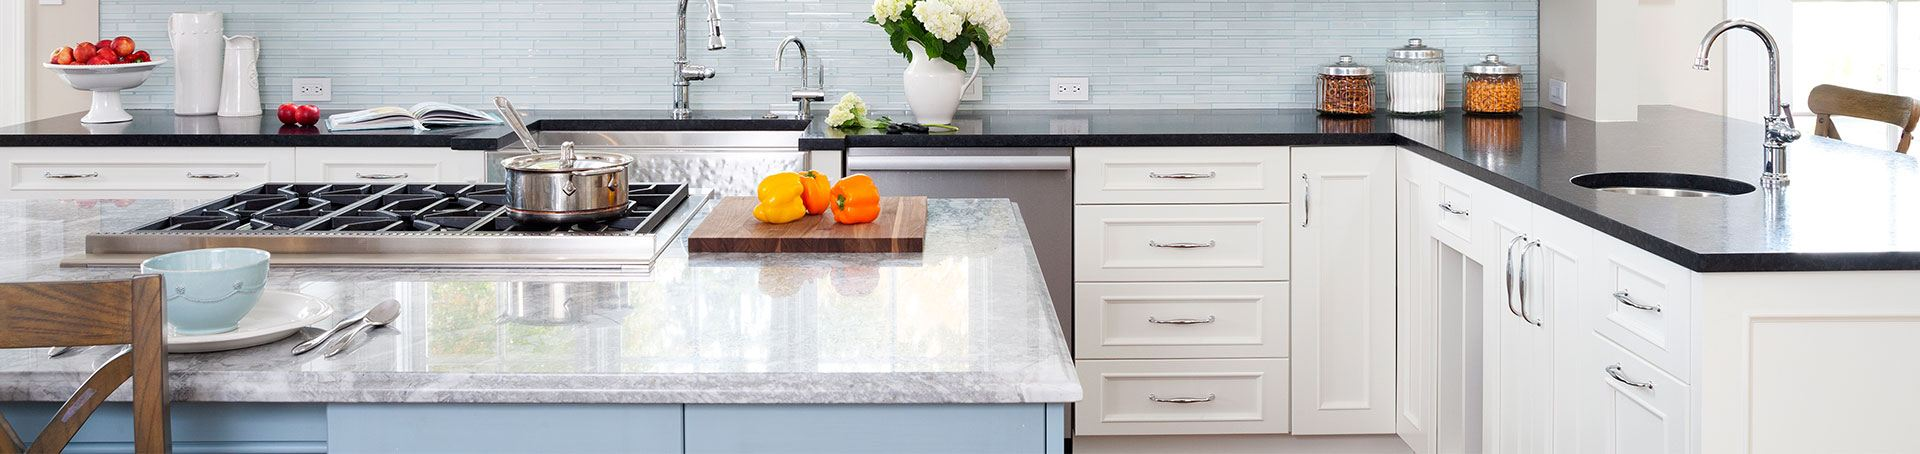 Kitchen Remodeling In Germantown Tn